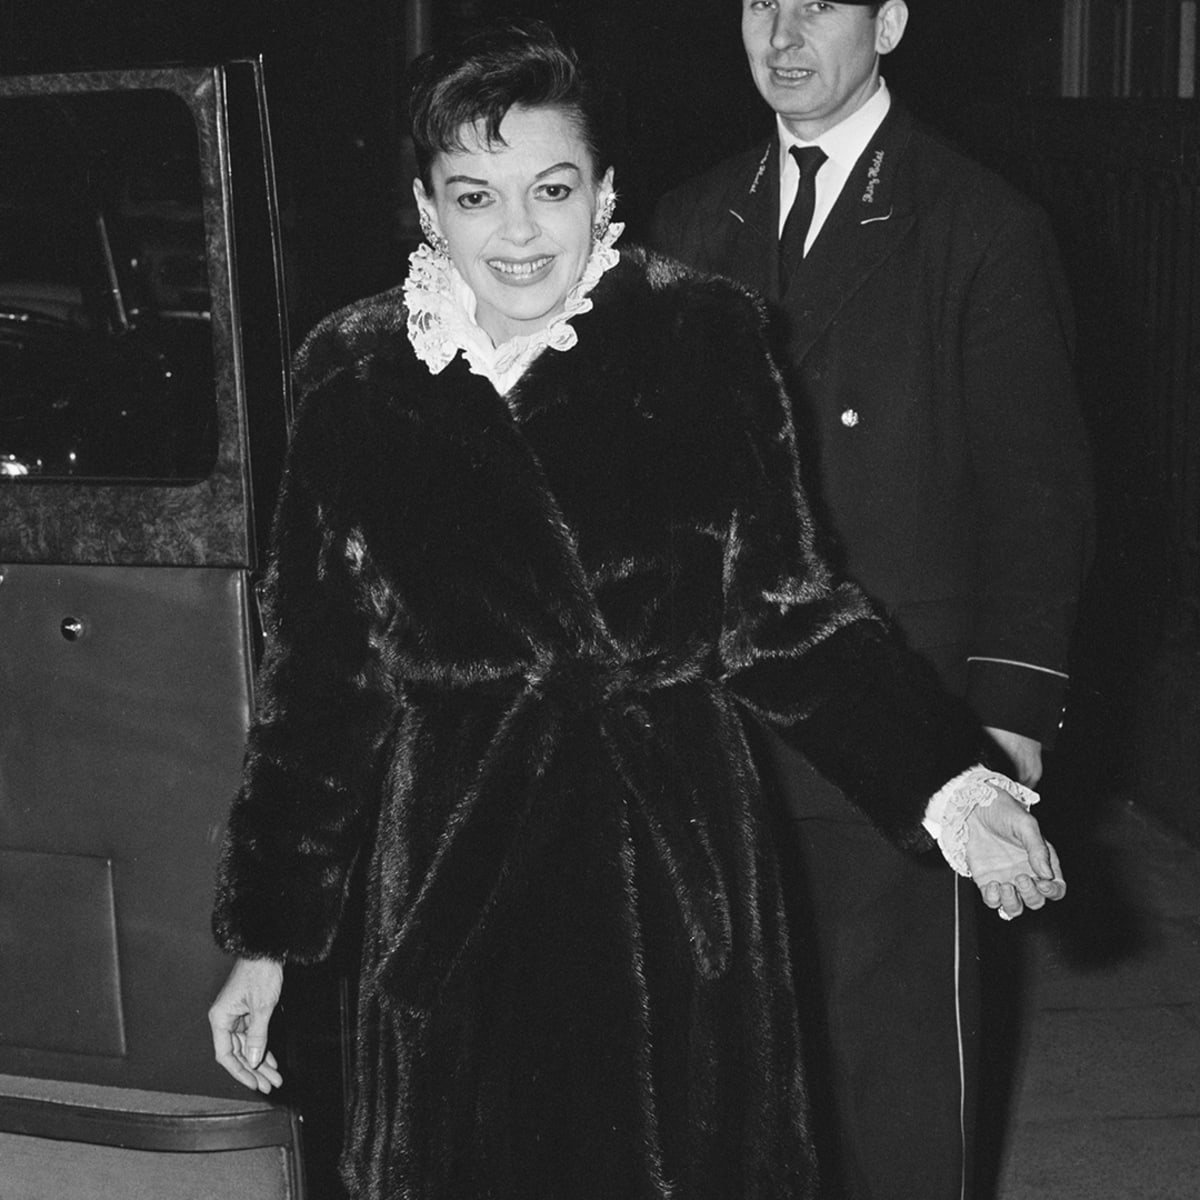 Judy Garland S Life Was In A Downward Spiral Before Her 1969 Death Biography